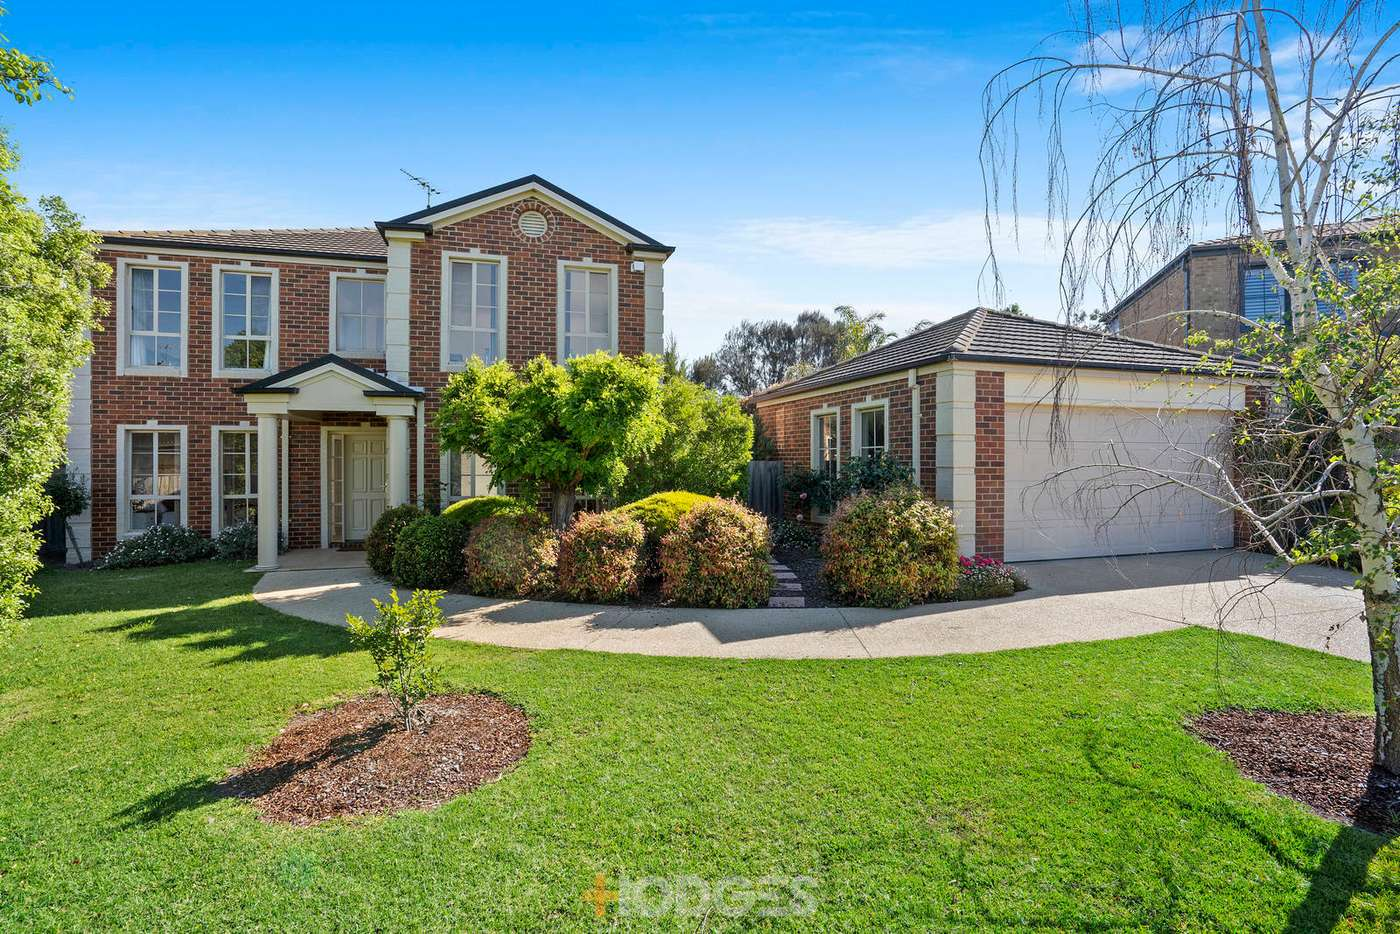 Main view of Homely house listing, 3 Sweeney Court, Highton, VIC 3216